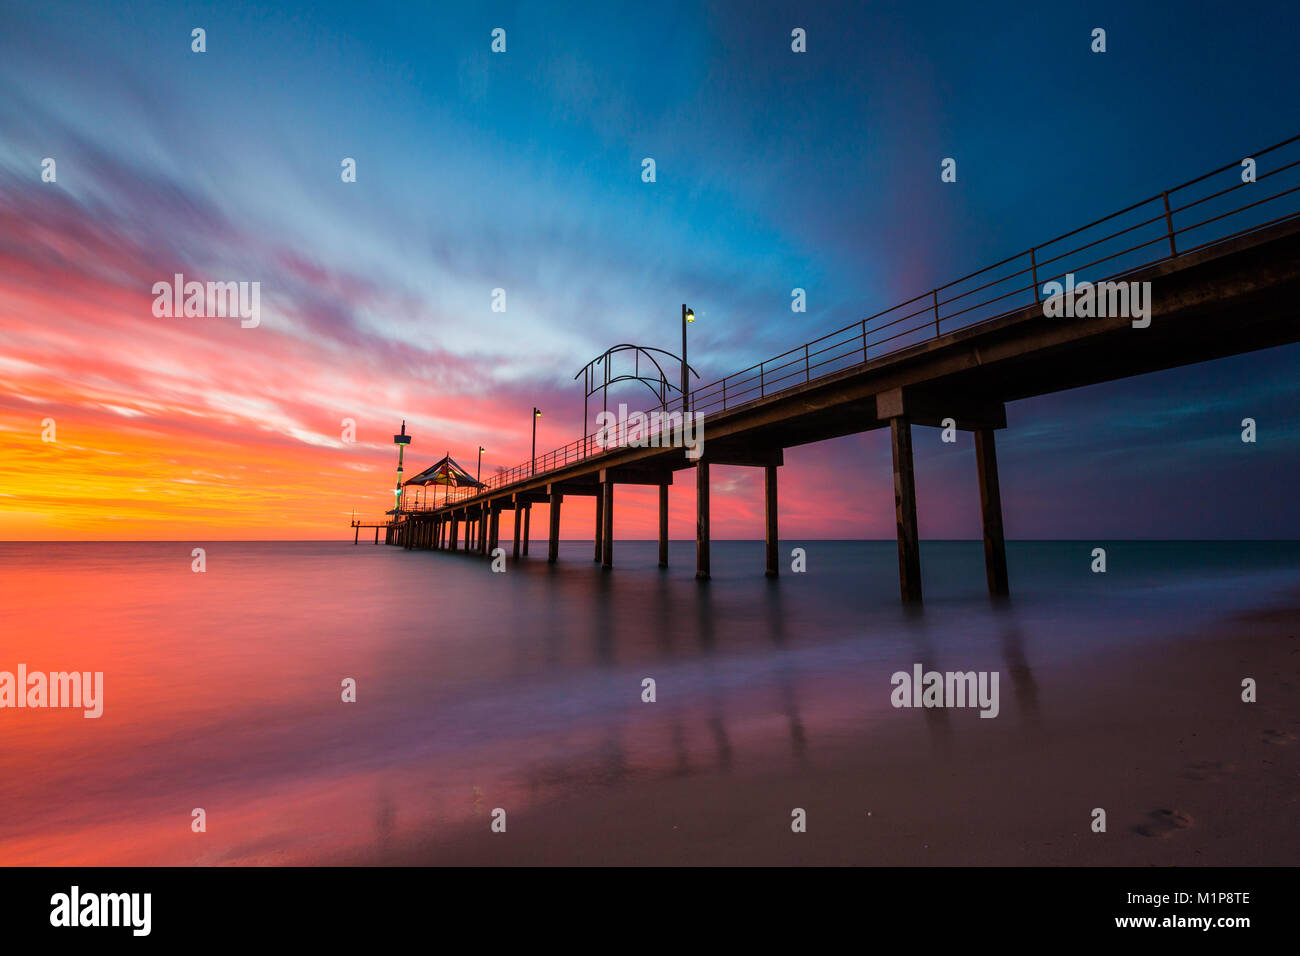 A vibrant sunset at Brighton Jetty in Brighton, Adelaide, South Australia, Australia on 1st February 2018 - Stock Image